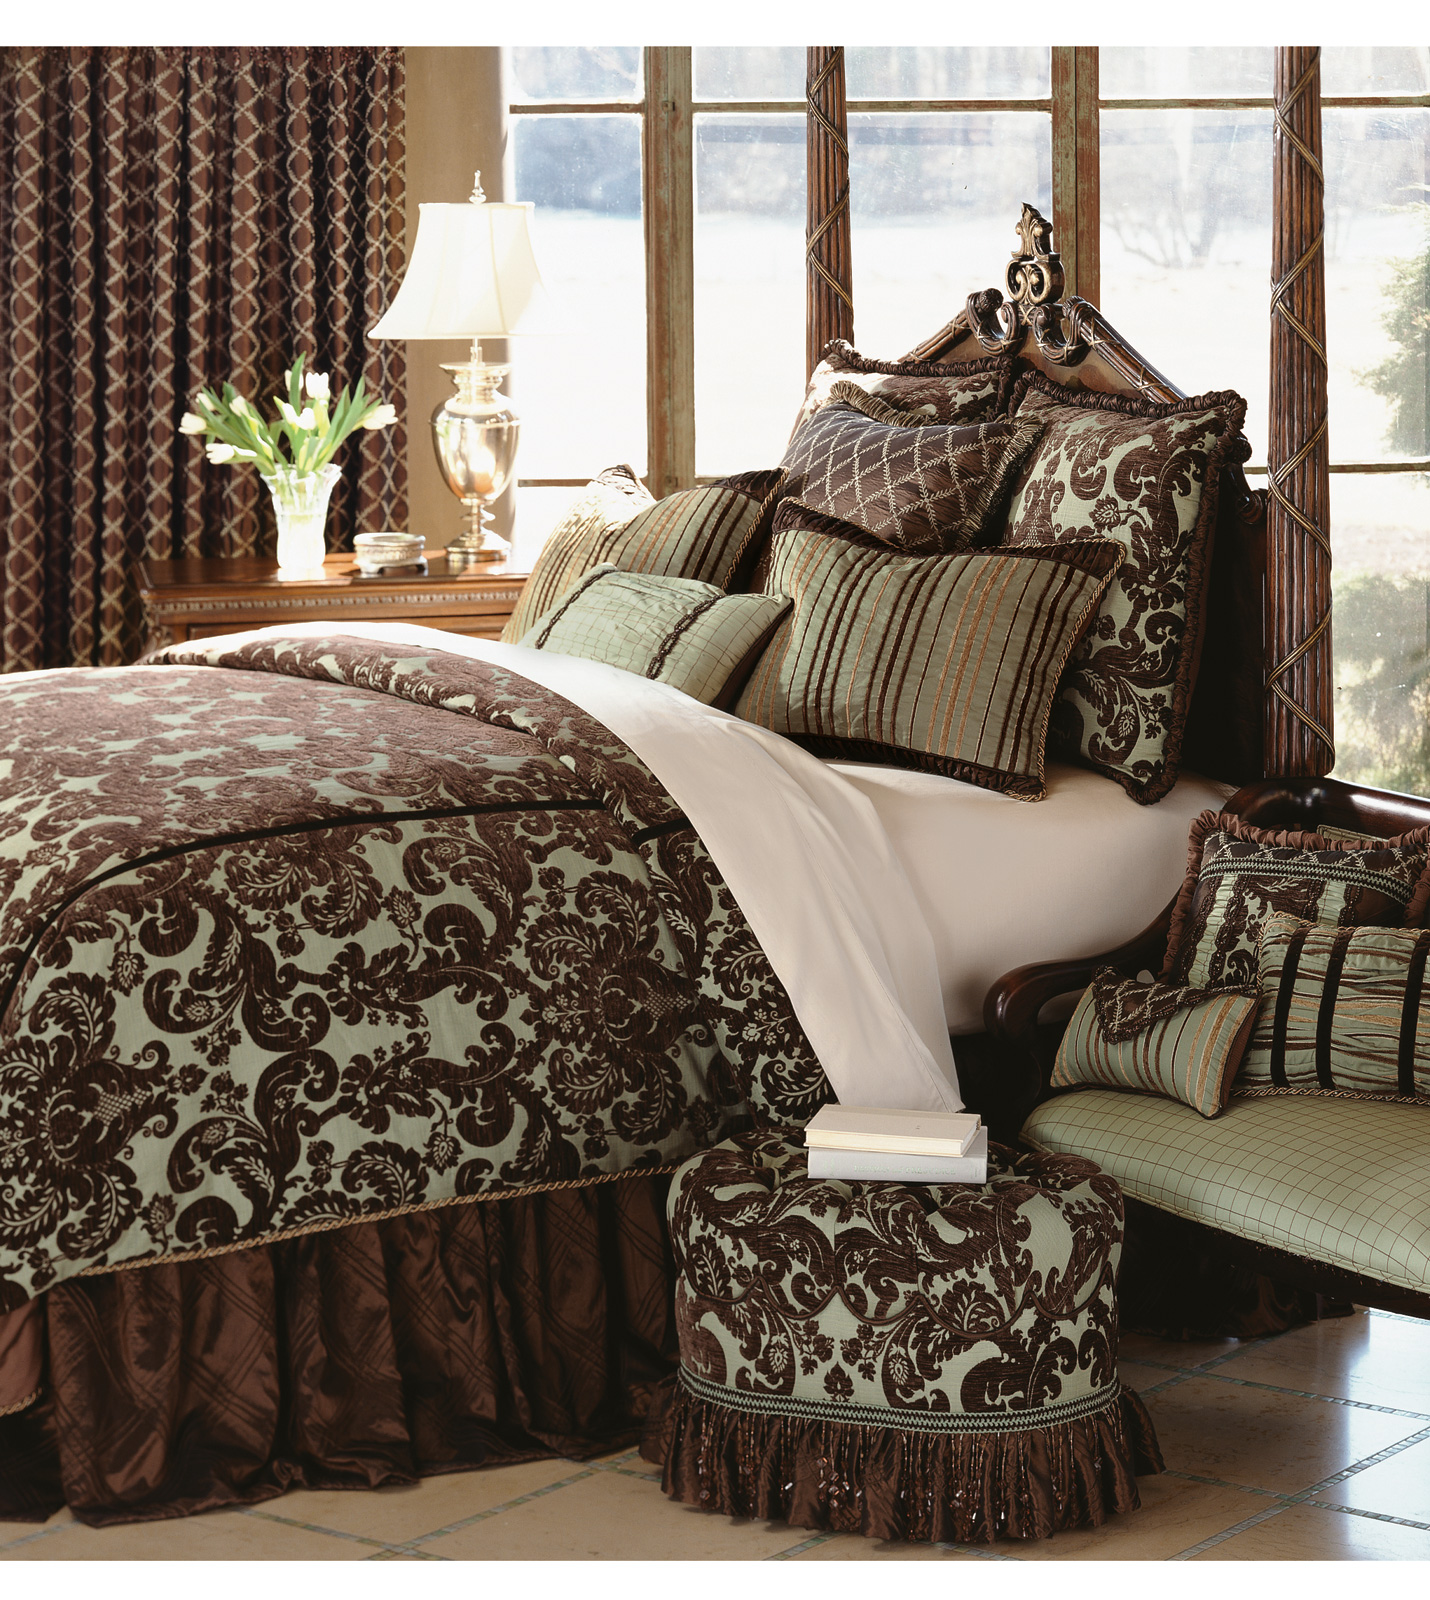 Luxury Bedding by Eastern Accents - Cadbury Collection